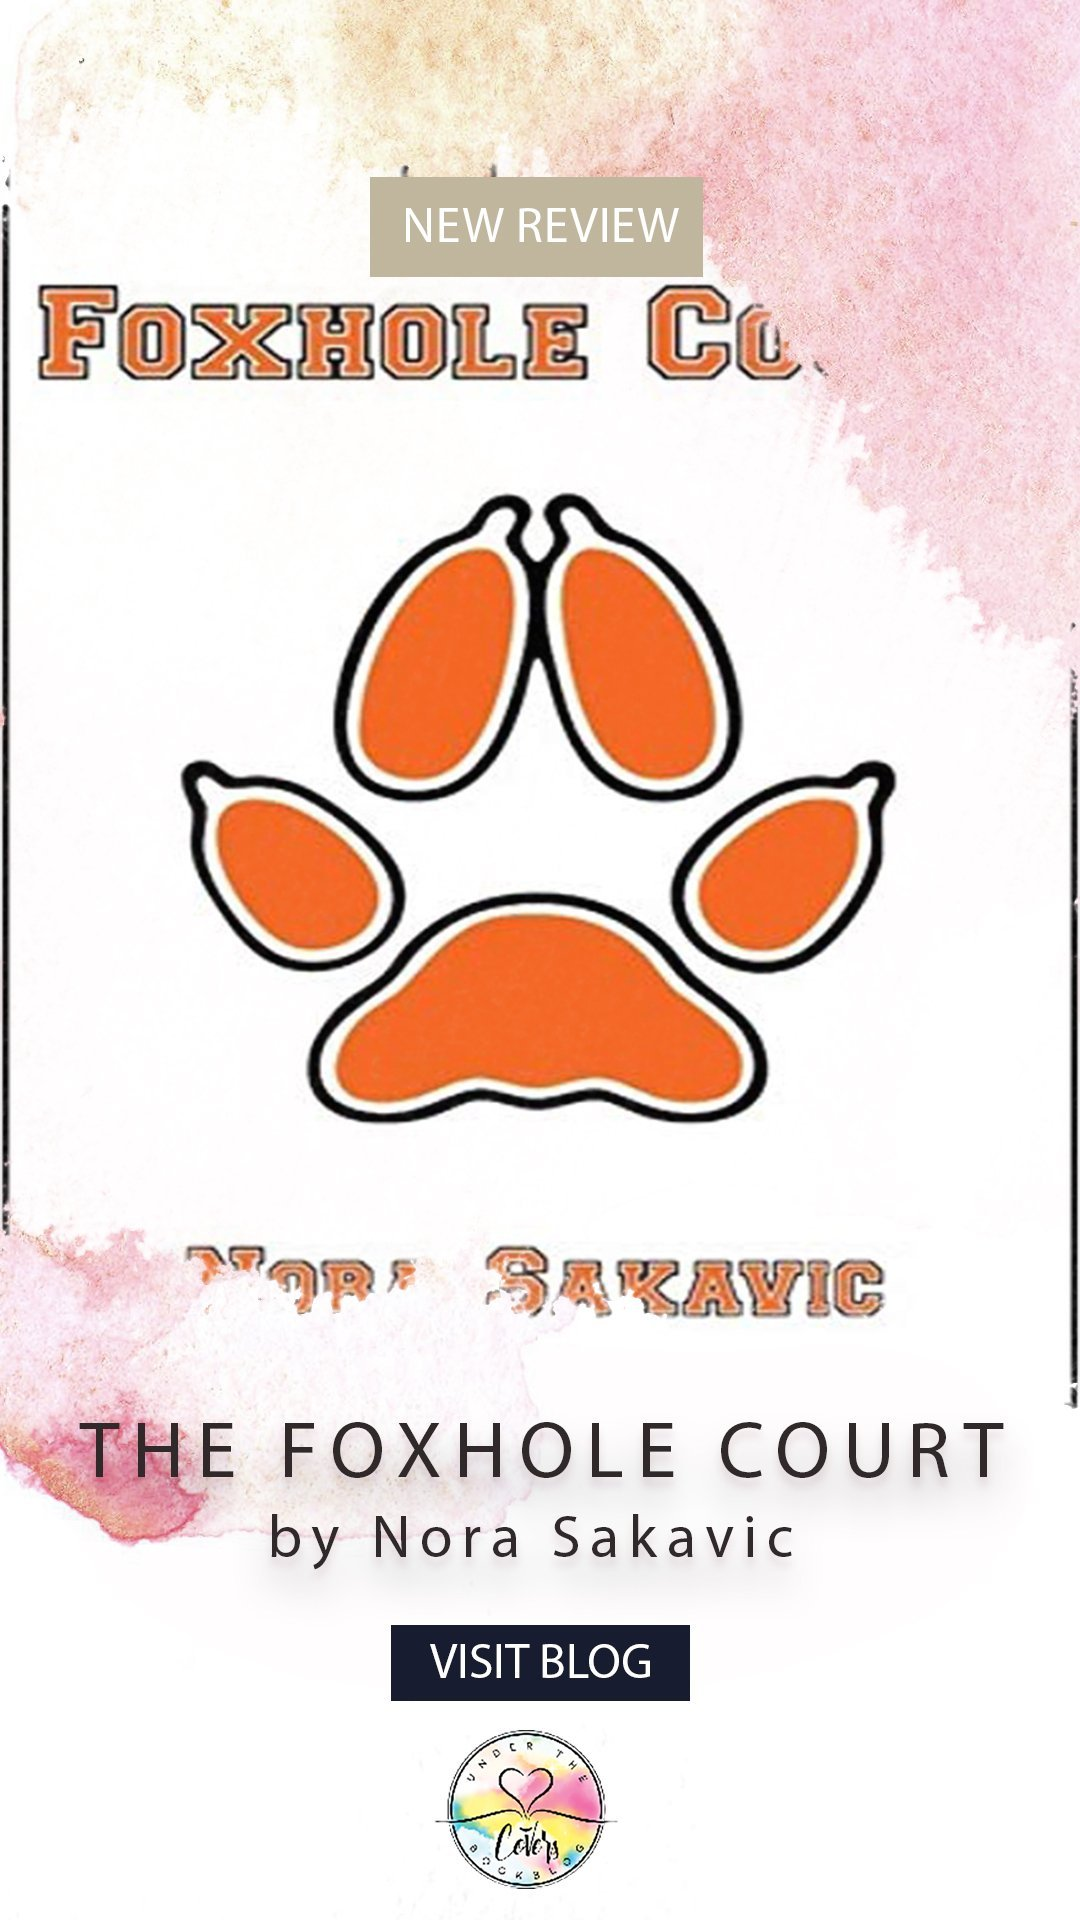 Review: The Foxhole Court by Nora Sakavic